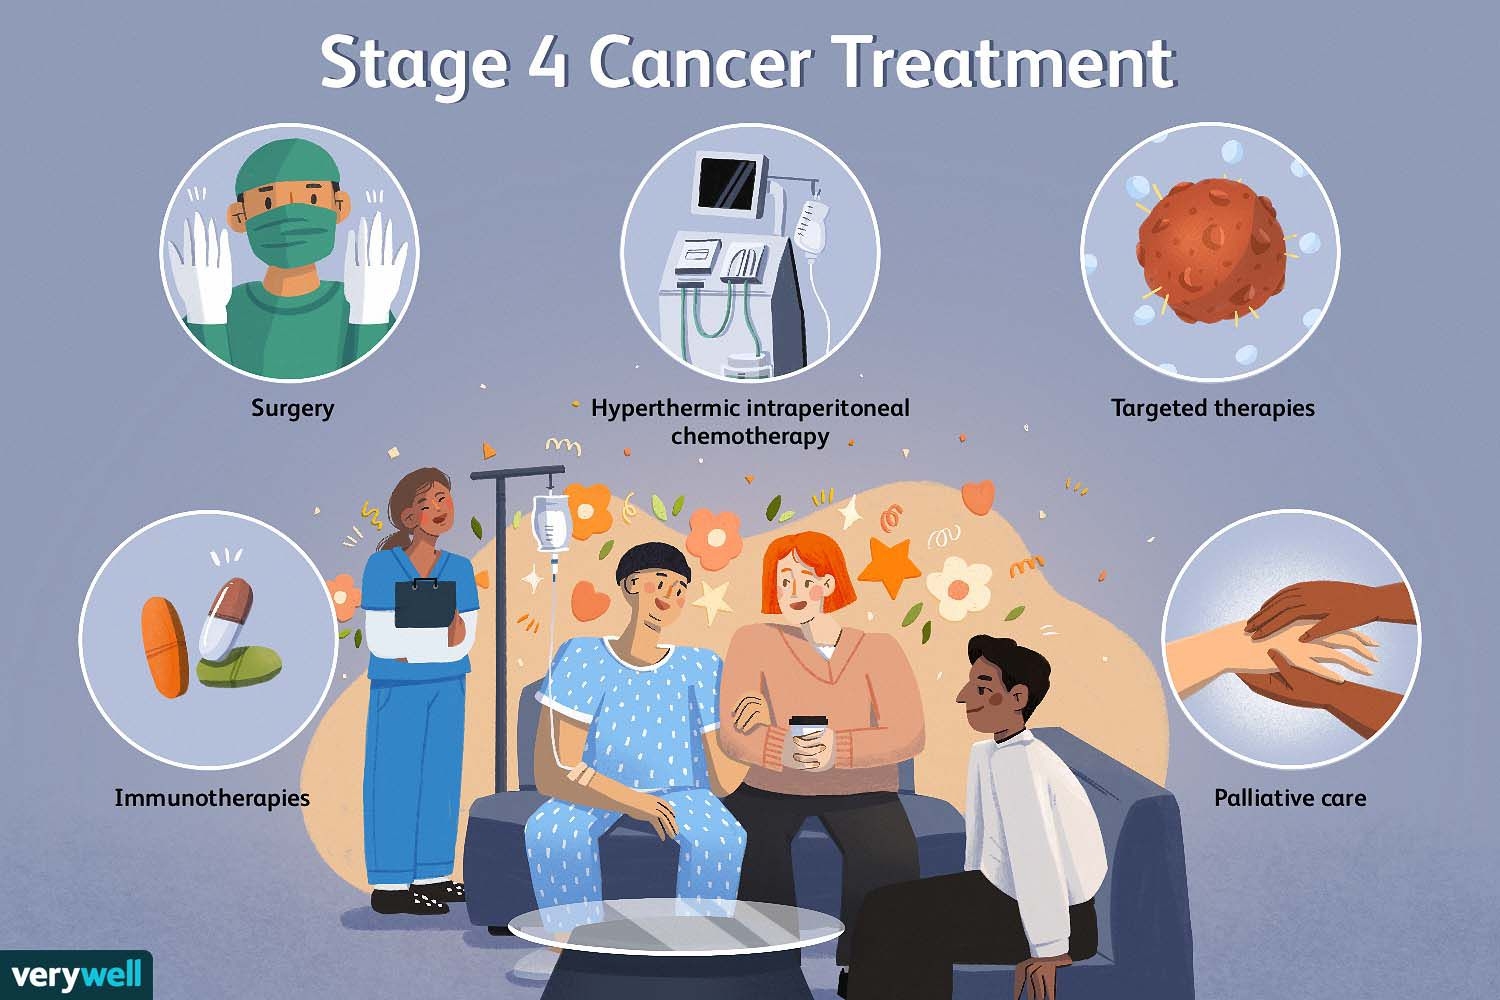 Stage 4 Cancer Treatment